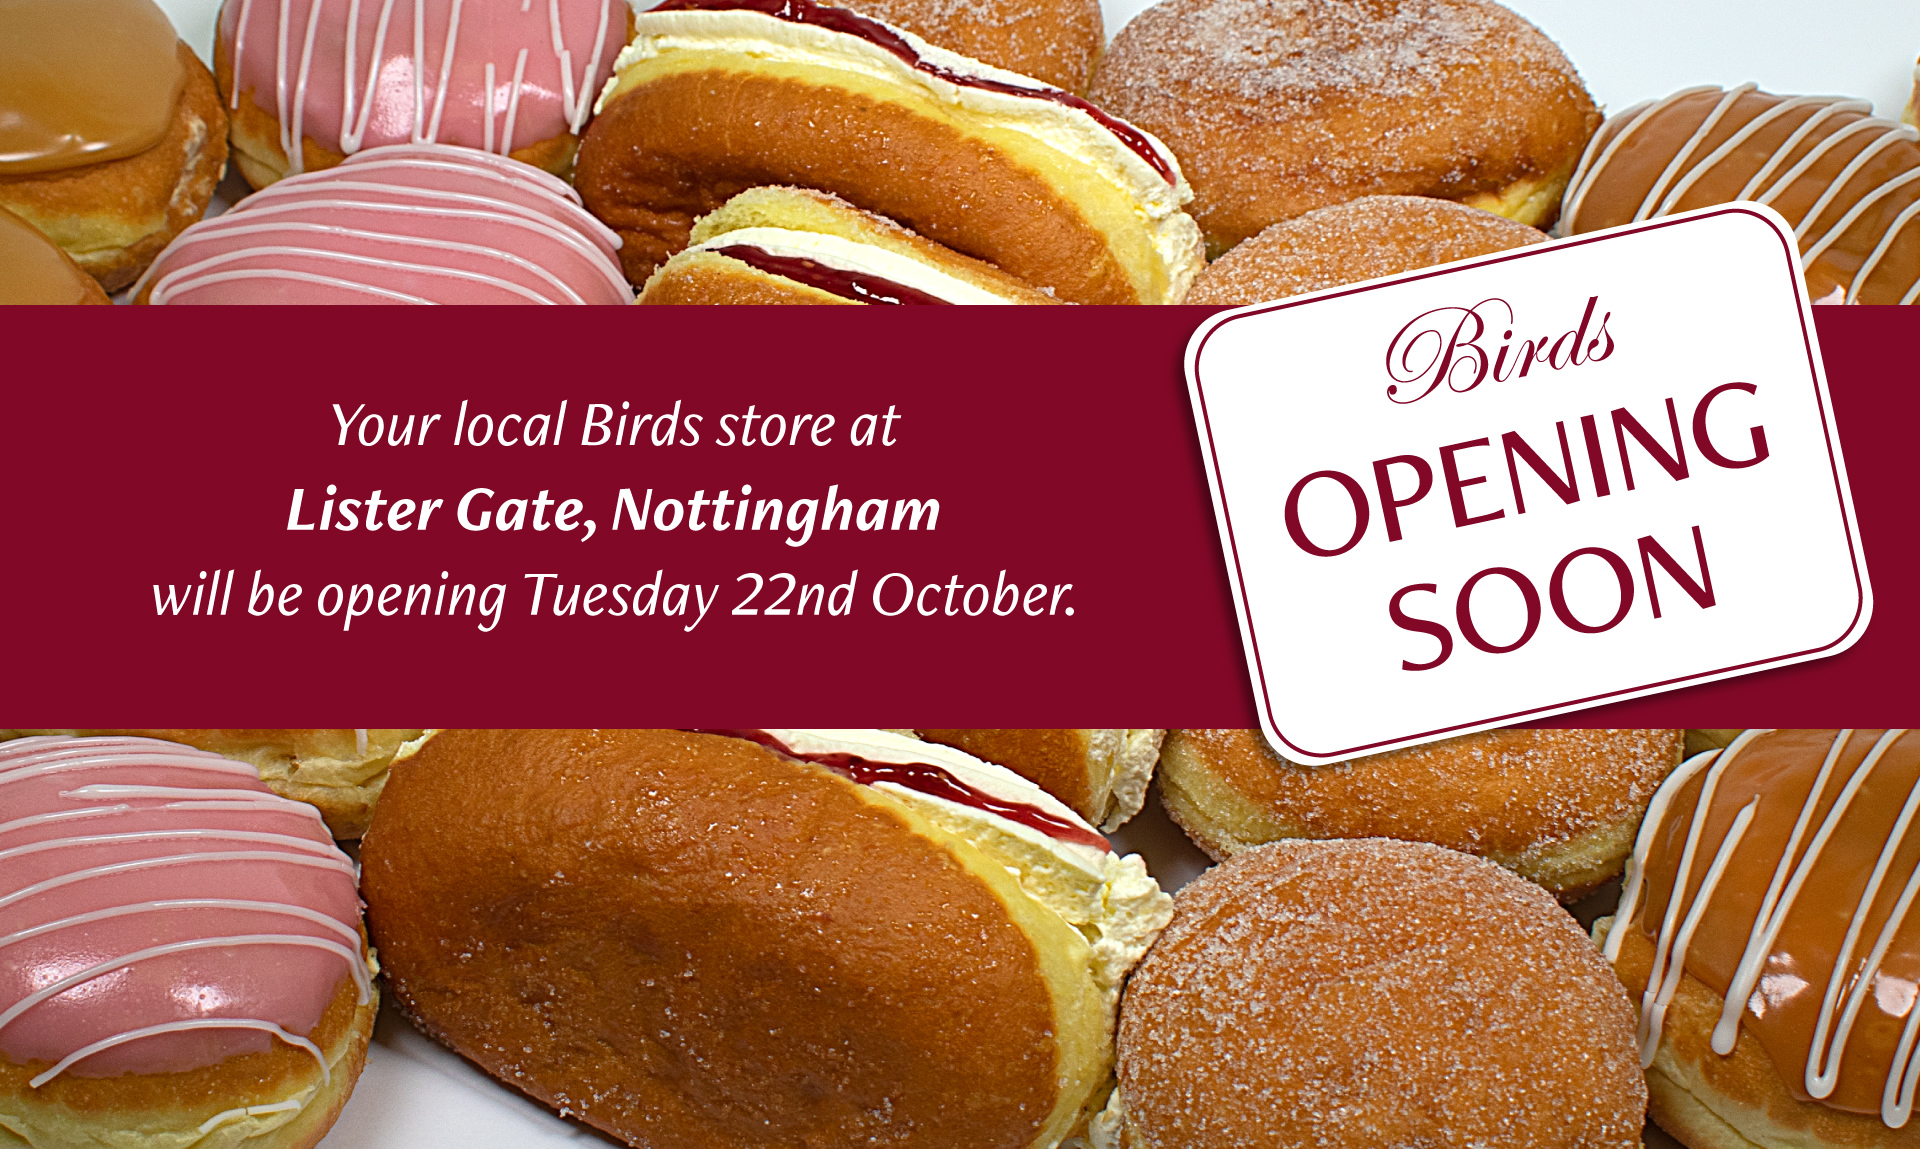 Your local Birds store at Lister Gate, Nottingham will be opening Thursday 22nd October